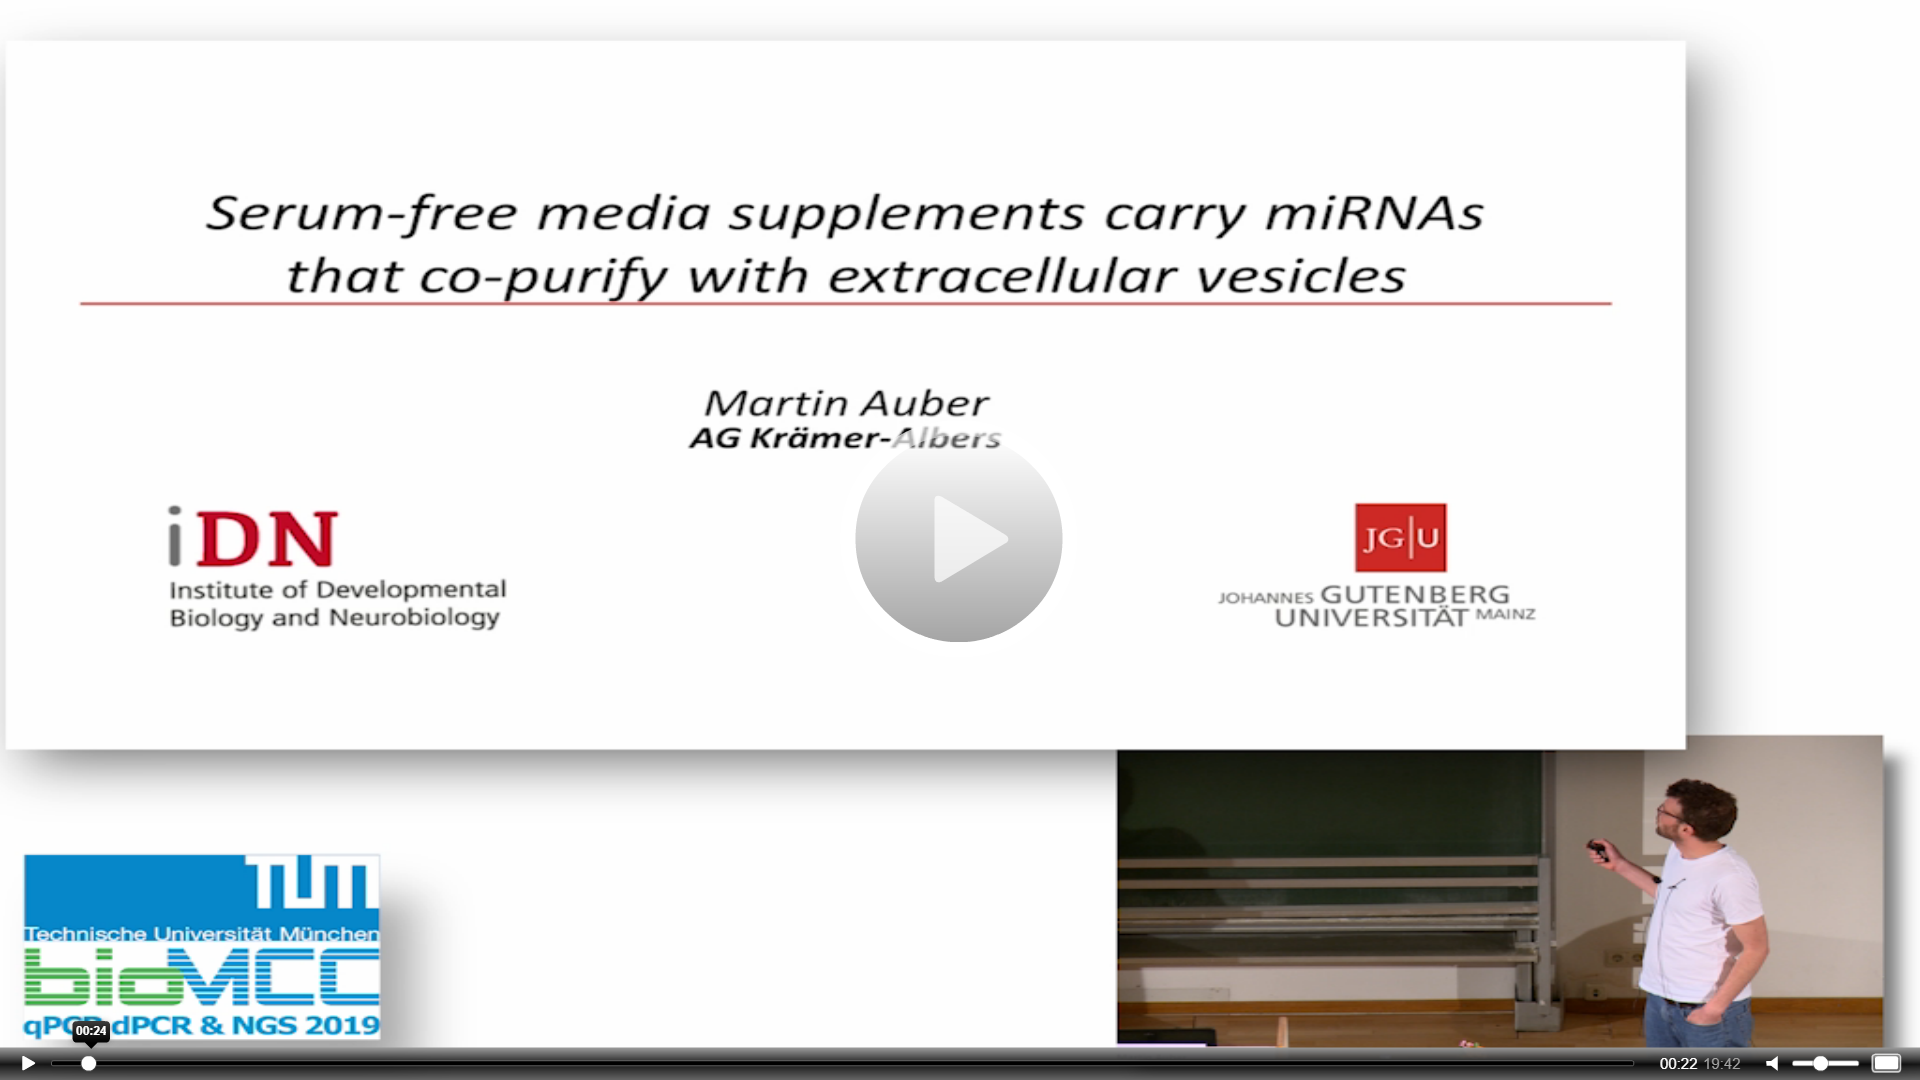 Serum-Free Media Supplements Carry miRNAs That Co-Purify With Extracellular Vesicles